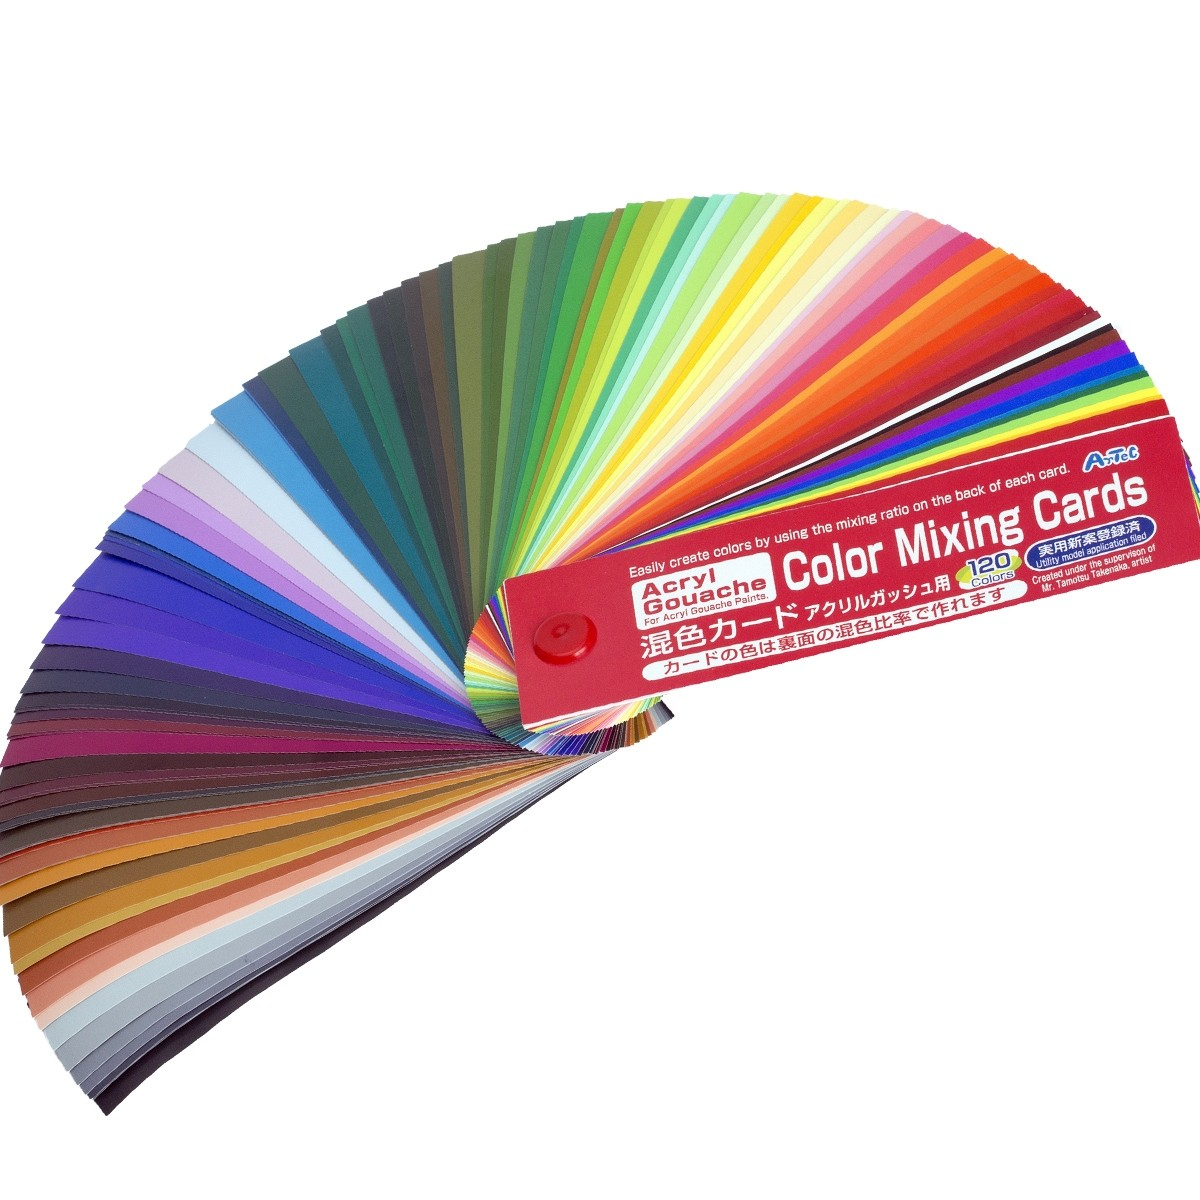 Color Mixing Guide For Mixing Paint by Turner Acryl Gouache Make 120 Colors